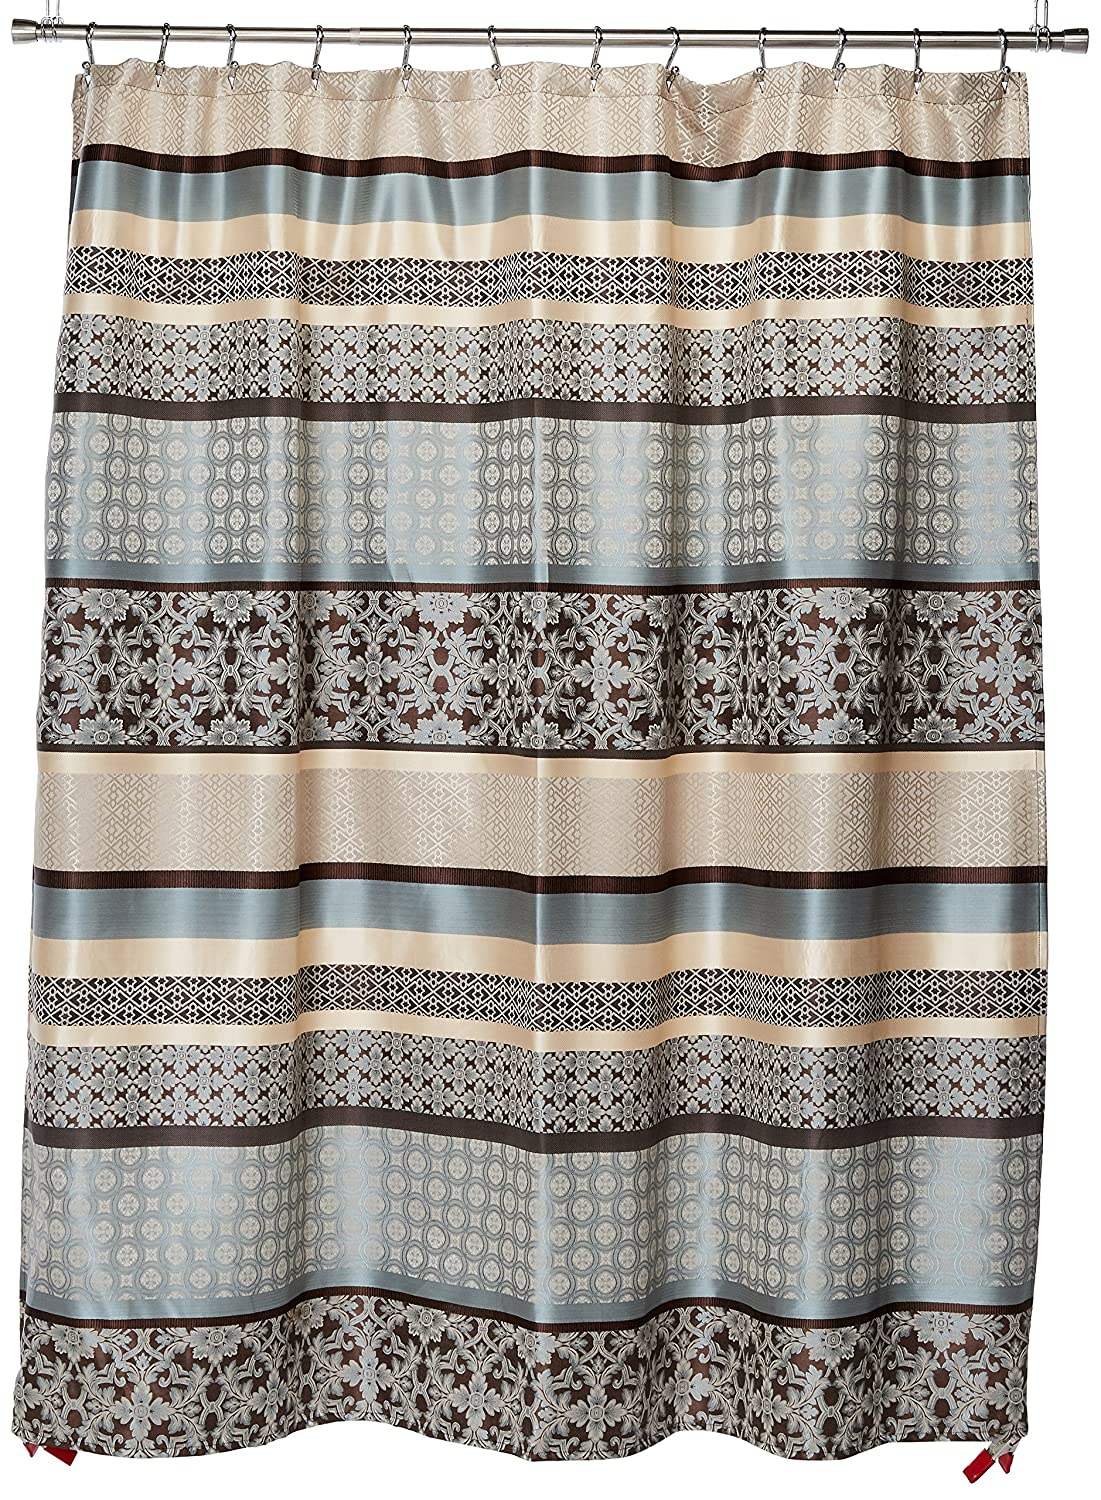 Amazon Madison Park Princeton Jacquard Shower Curtain Blue 72x72 Home Kitchen